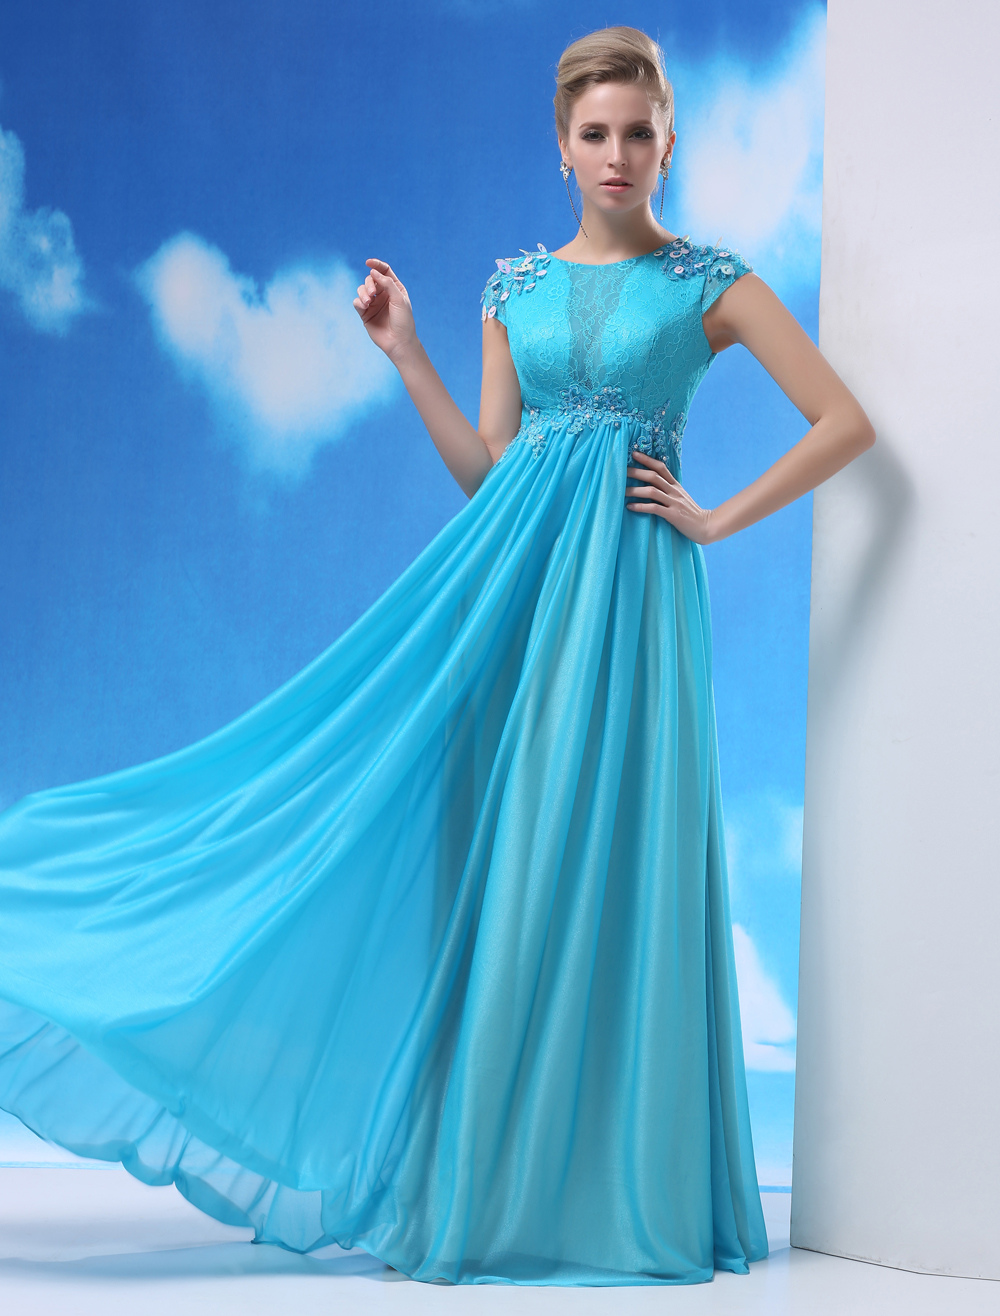 Aqua Evening Dress Shot Silk Beaded Prom Dress Jewel Neck Short Sleeves A Line Pleated Floor Length Party Dress Milanoo